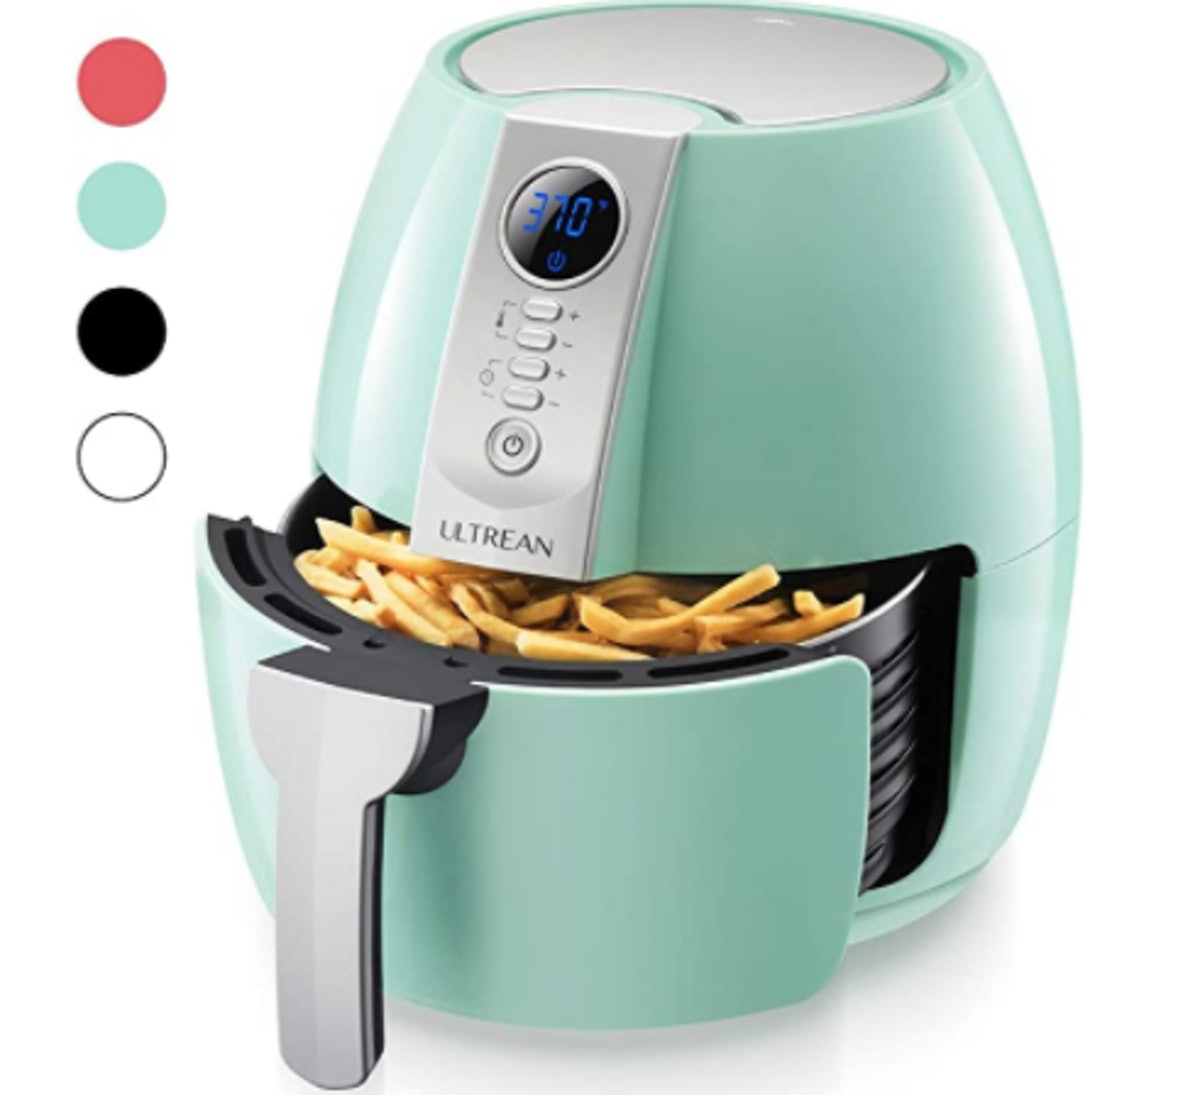 Ultrean Air Fryer Electric Hot Air Fryers Oven Oilless Cooke